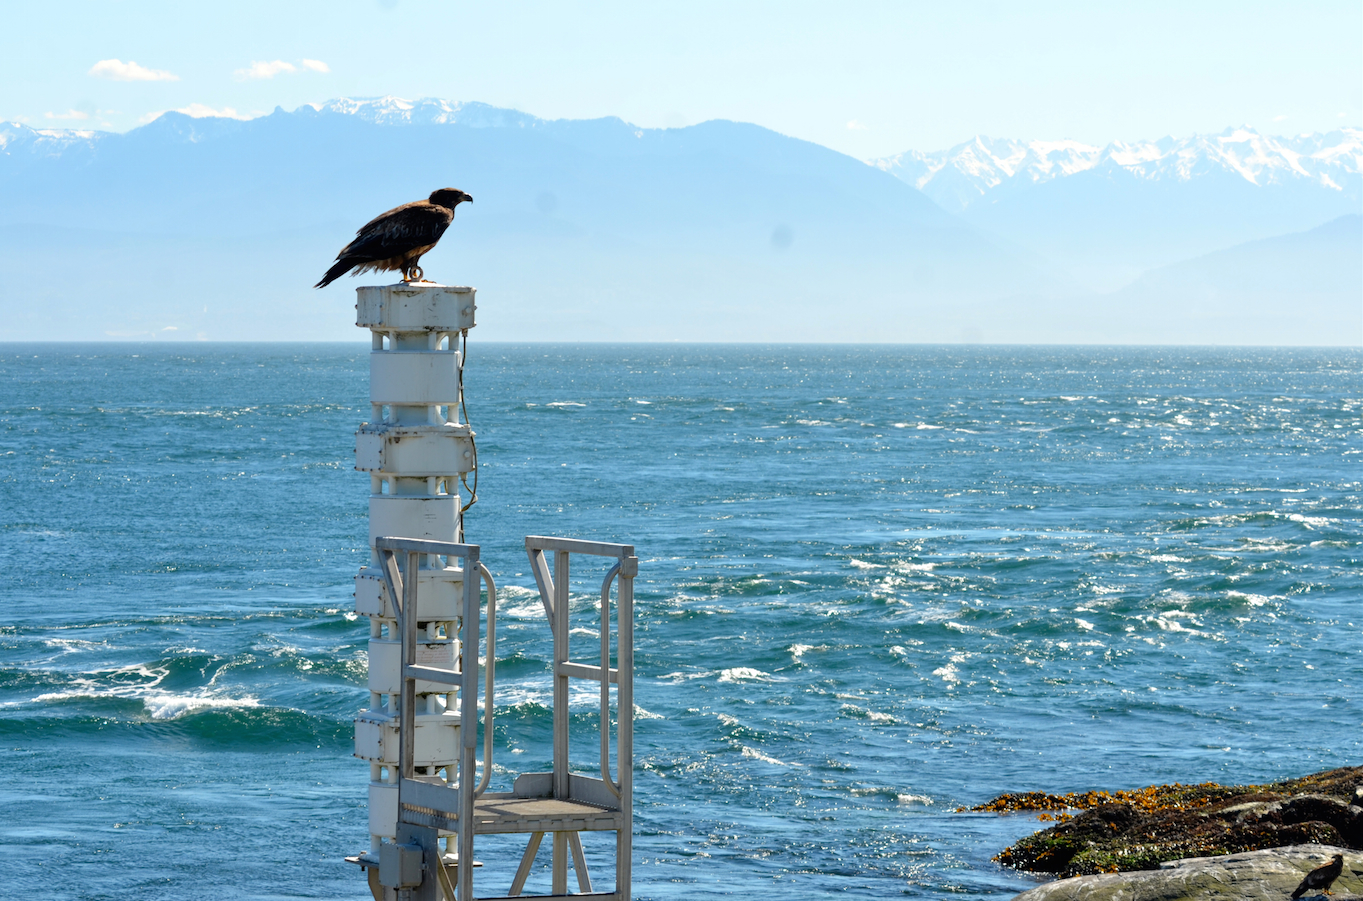 Bald Eagles continue to frequent the Ecological Reserve. This young on is roosting on the foghorn, a popular place to face into the wind.